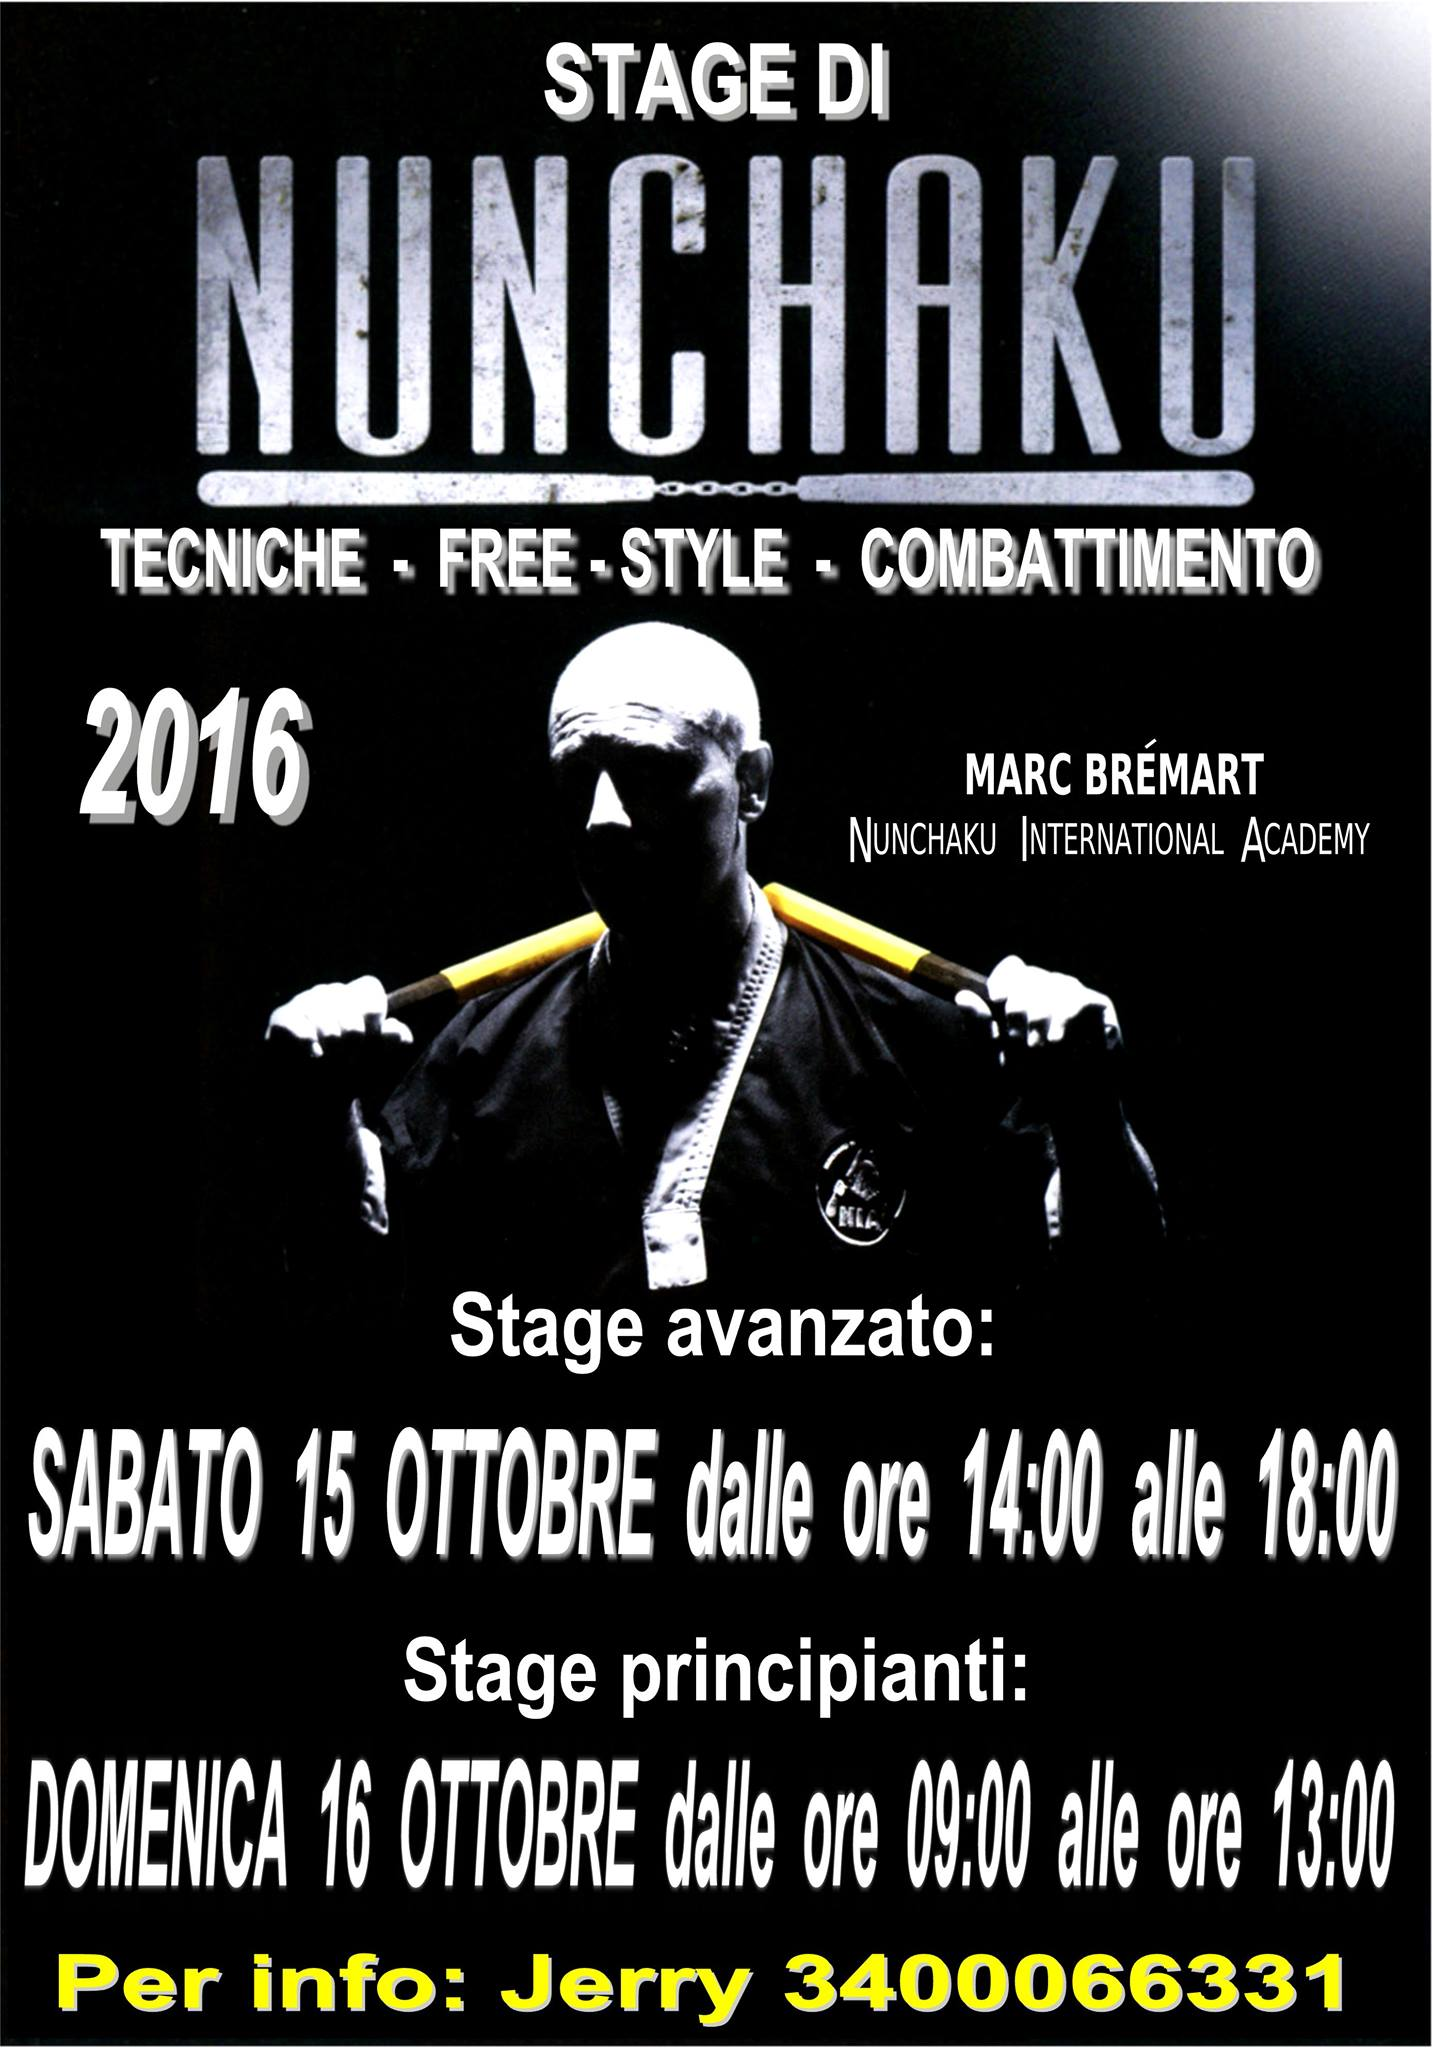 NIA Nunchaku International Academy, Stage Ottobre 2016, Marc Bremart